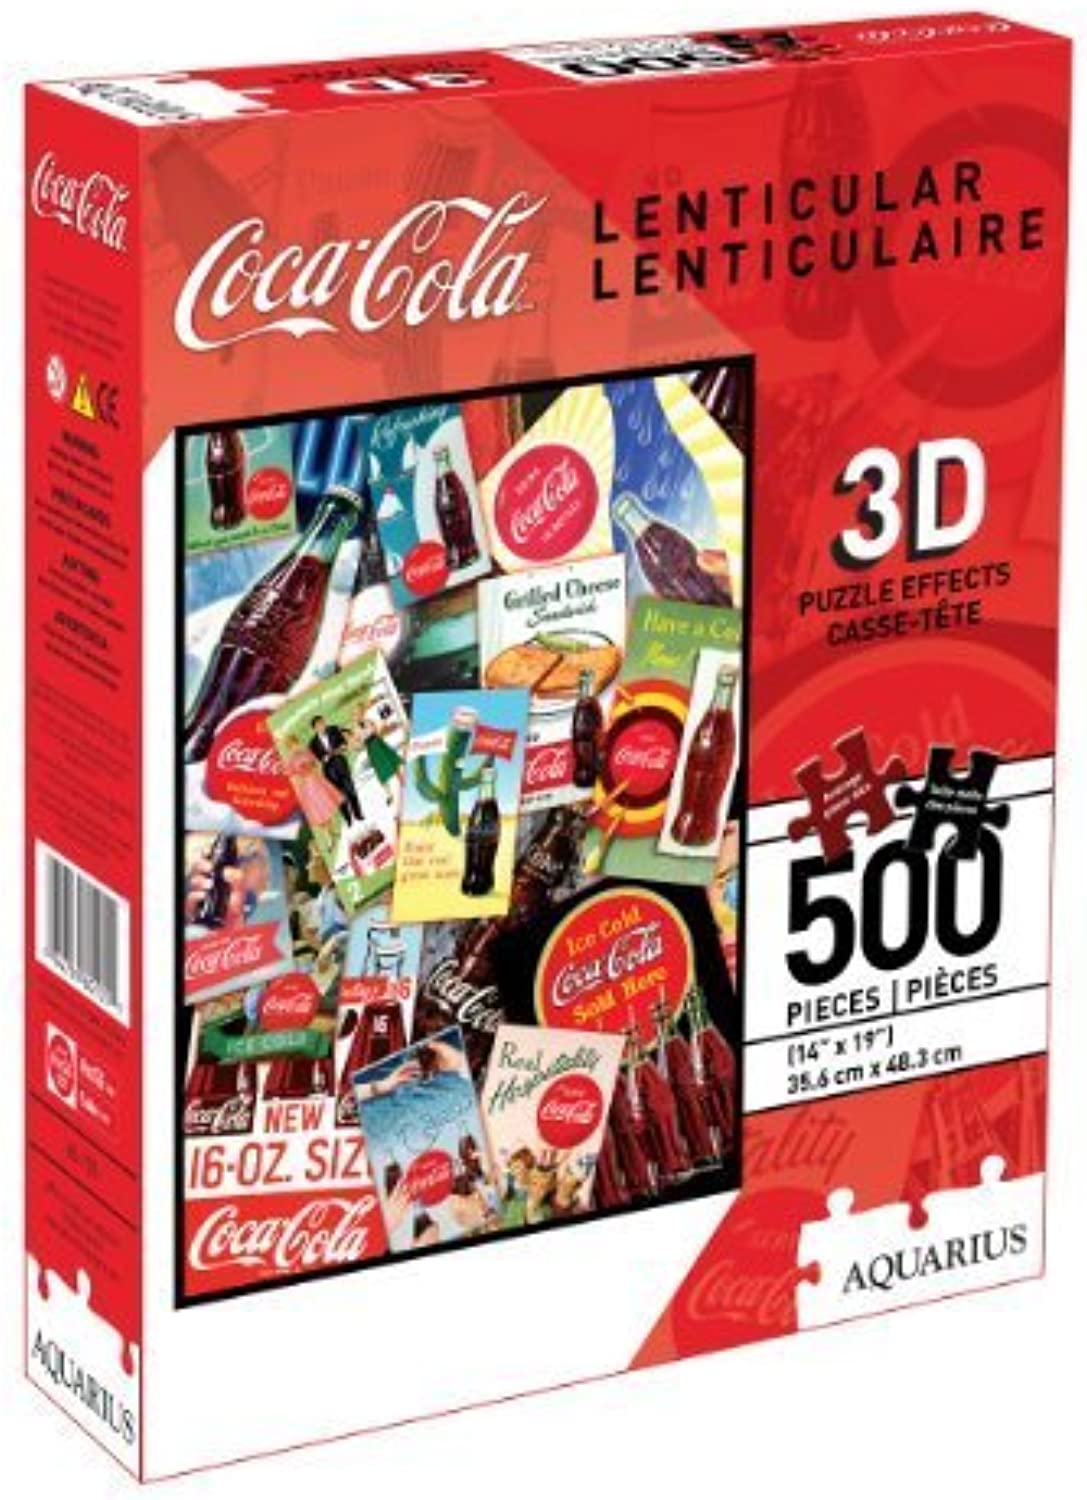 CocaCola 500 Piece 3D Lenticular Jigsaw Puzzle by NMR Distribution